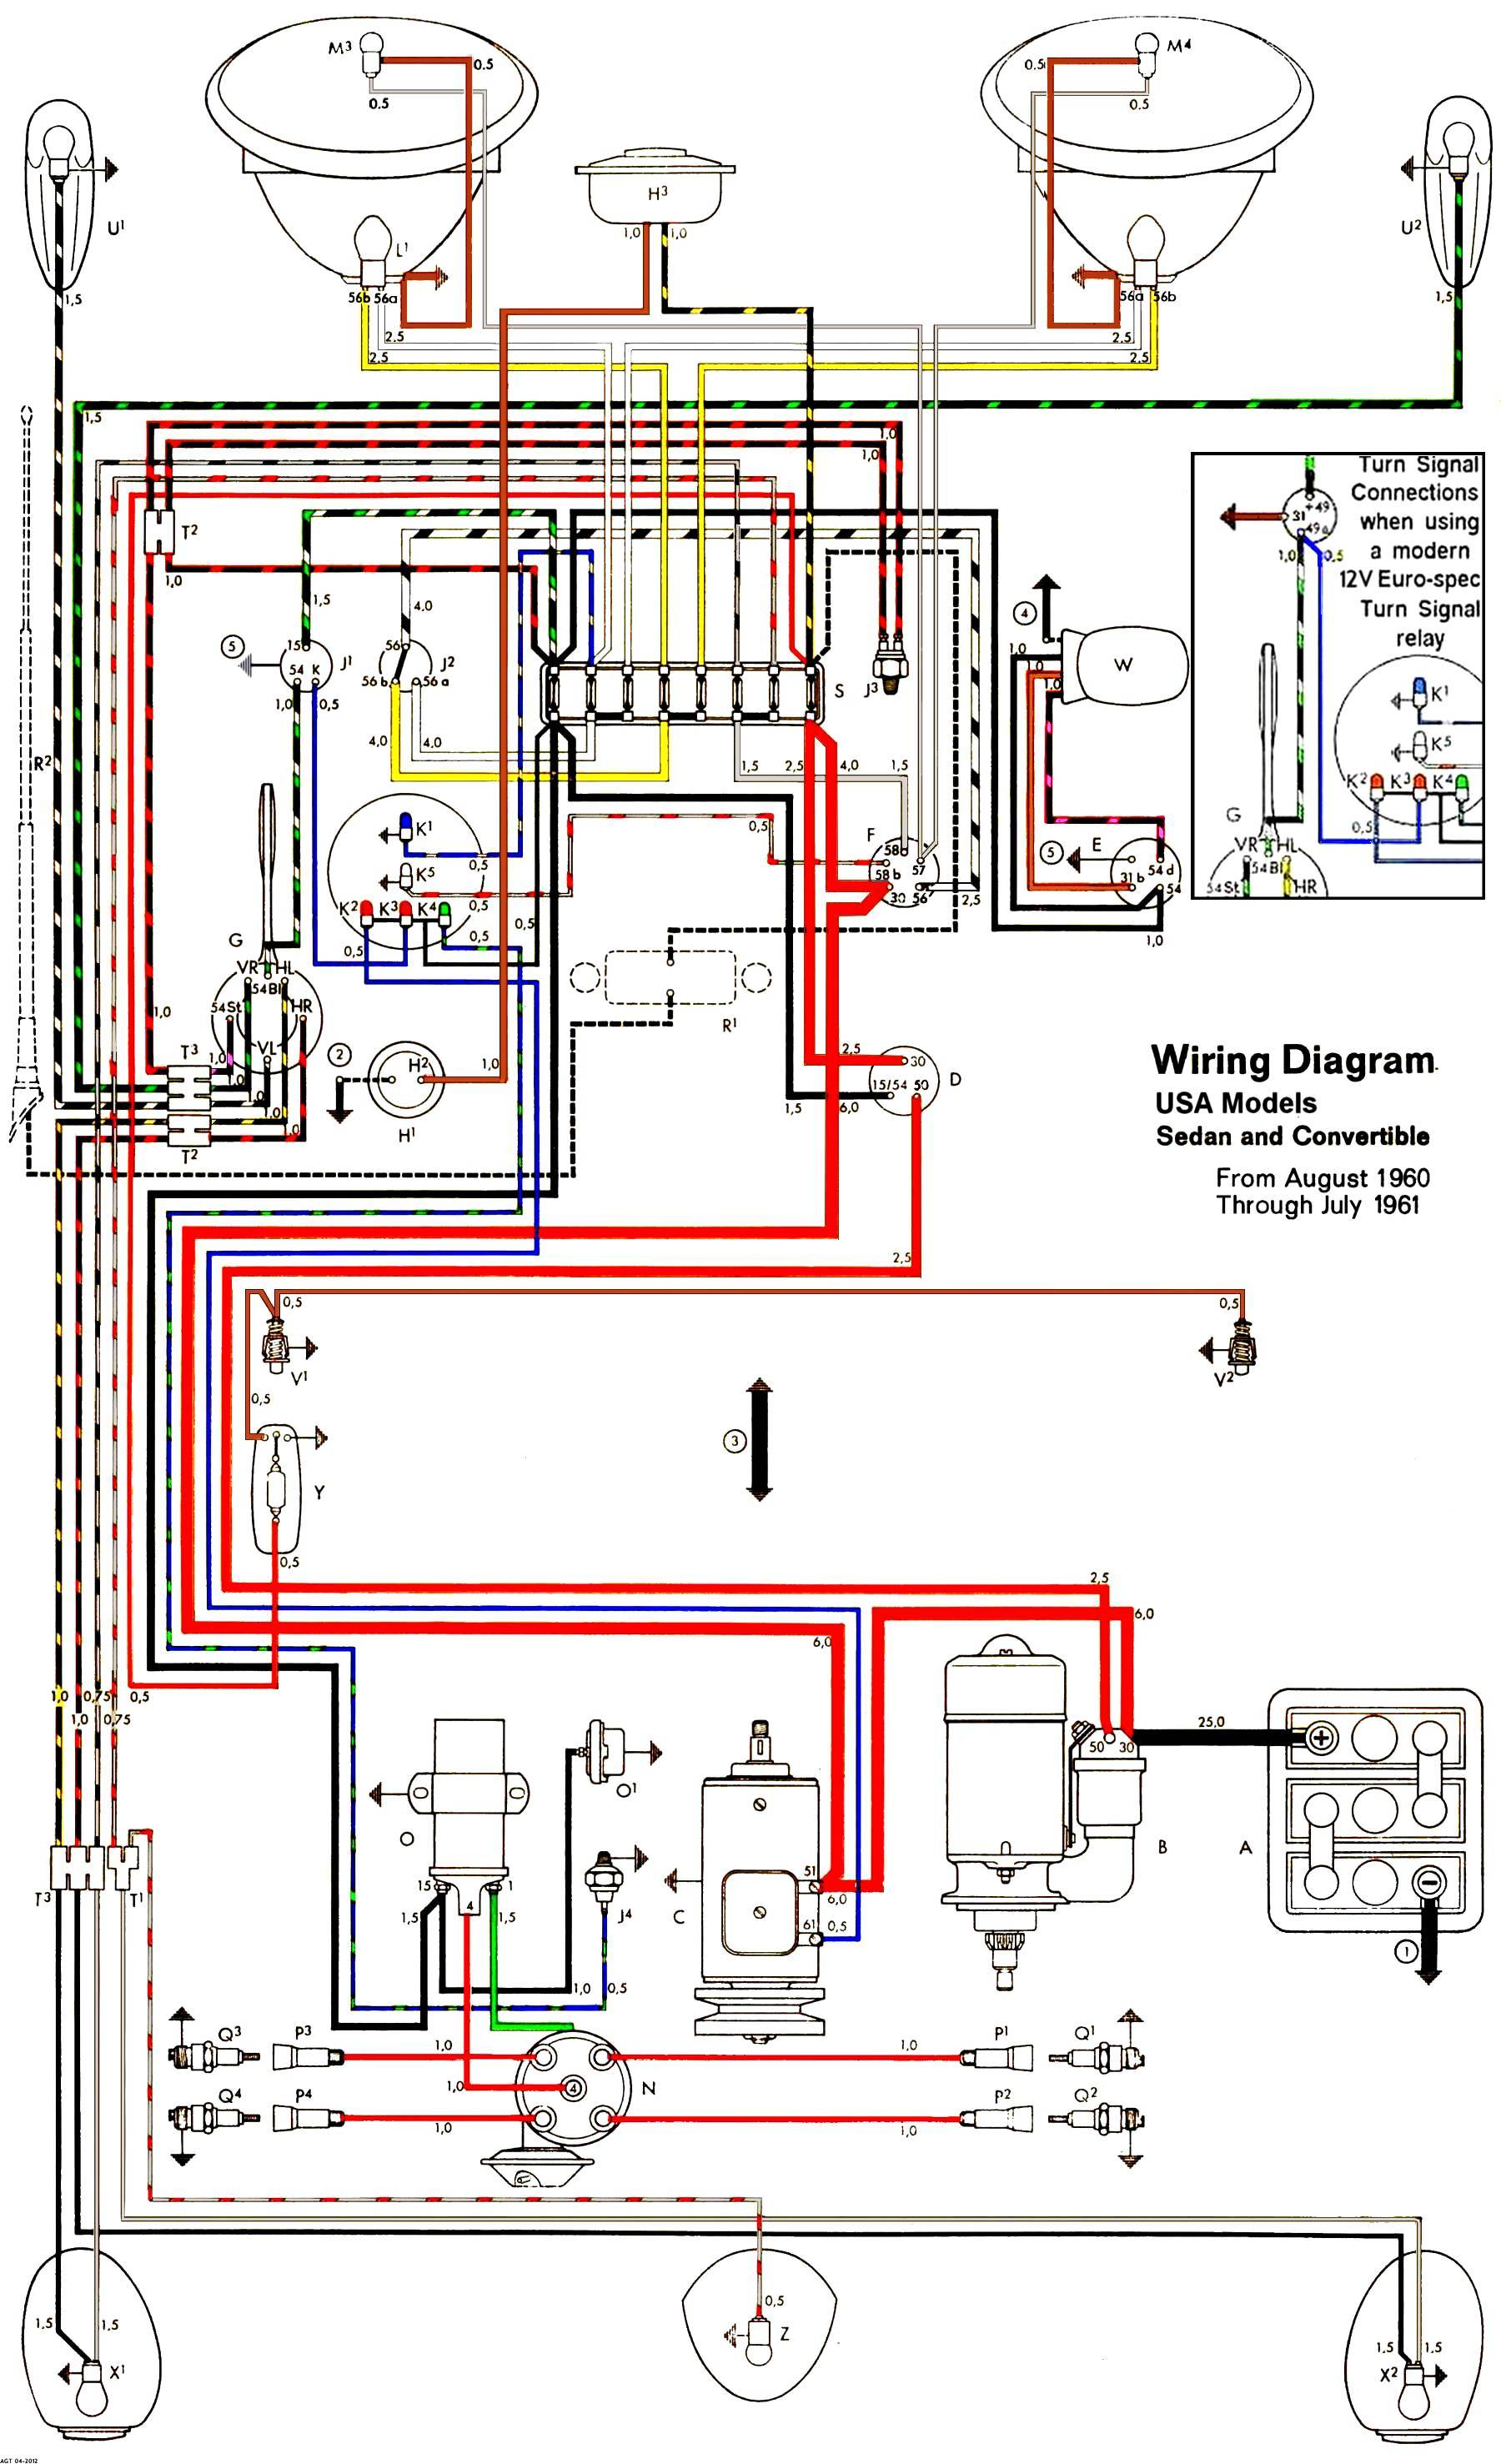 1961USA T1 thesamba com type 1 wiring diagrams 1977 VW Beetle Wiring Diagram at honlapkeszites.co